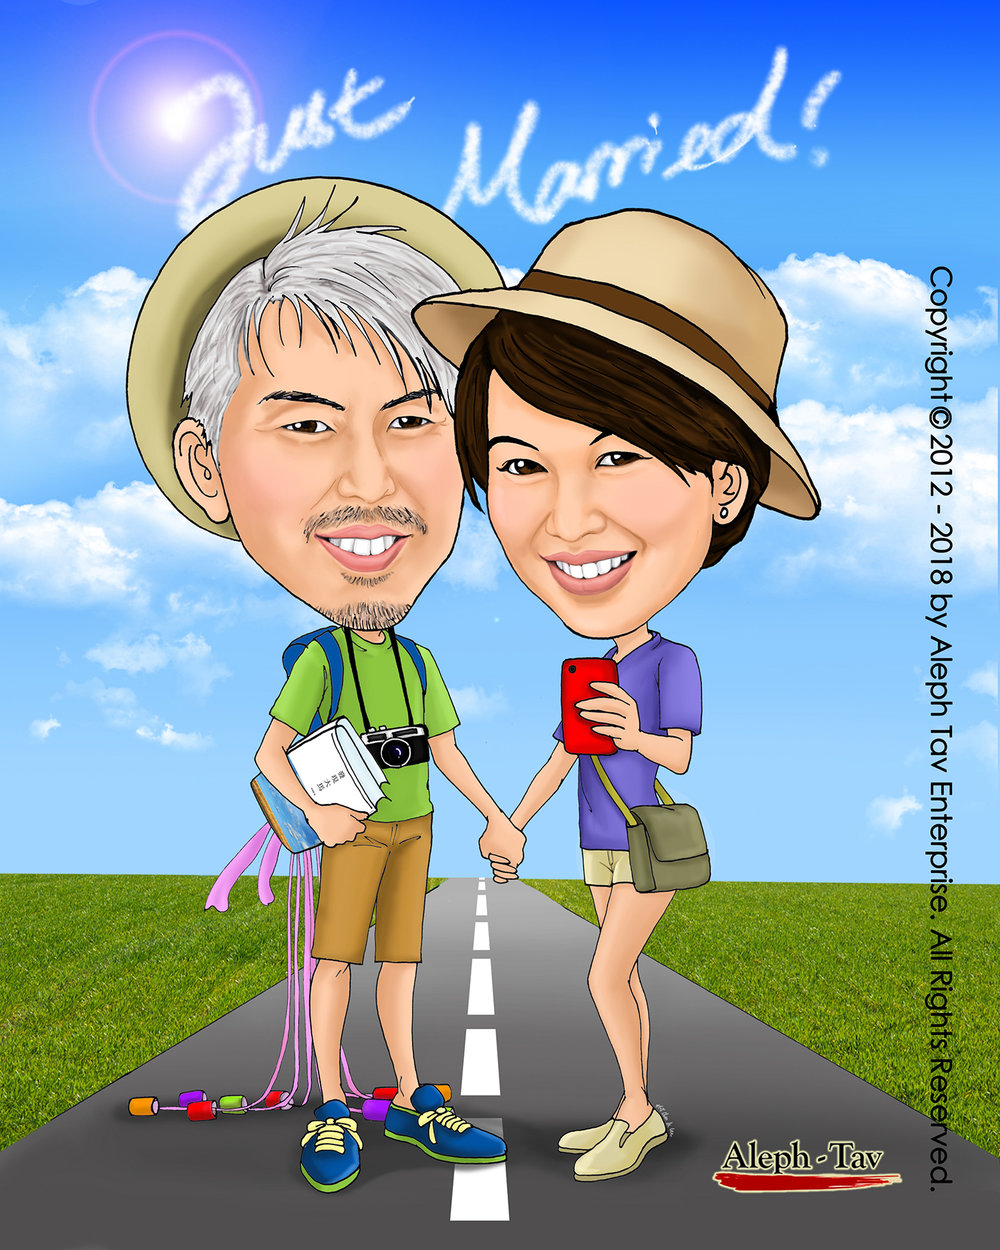 chinese-asian-wedding-gifts-invitation-caricature-7.jpg